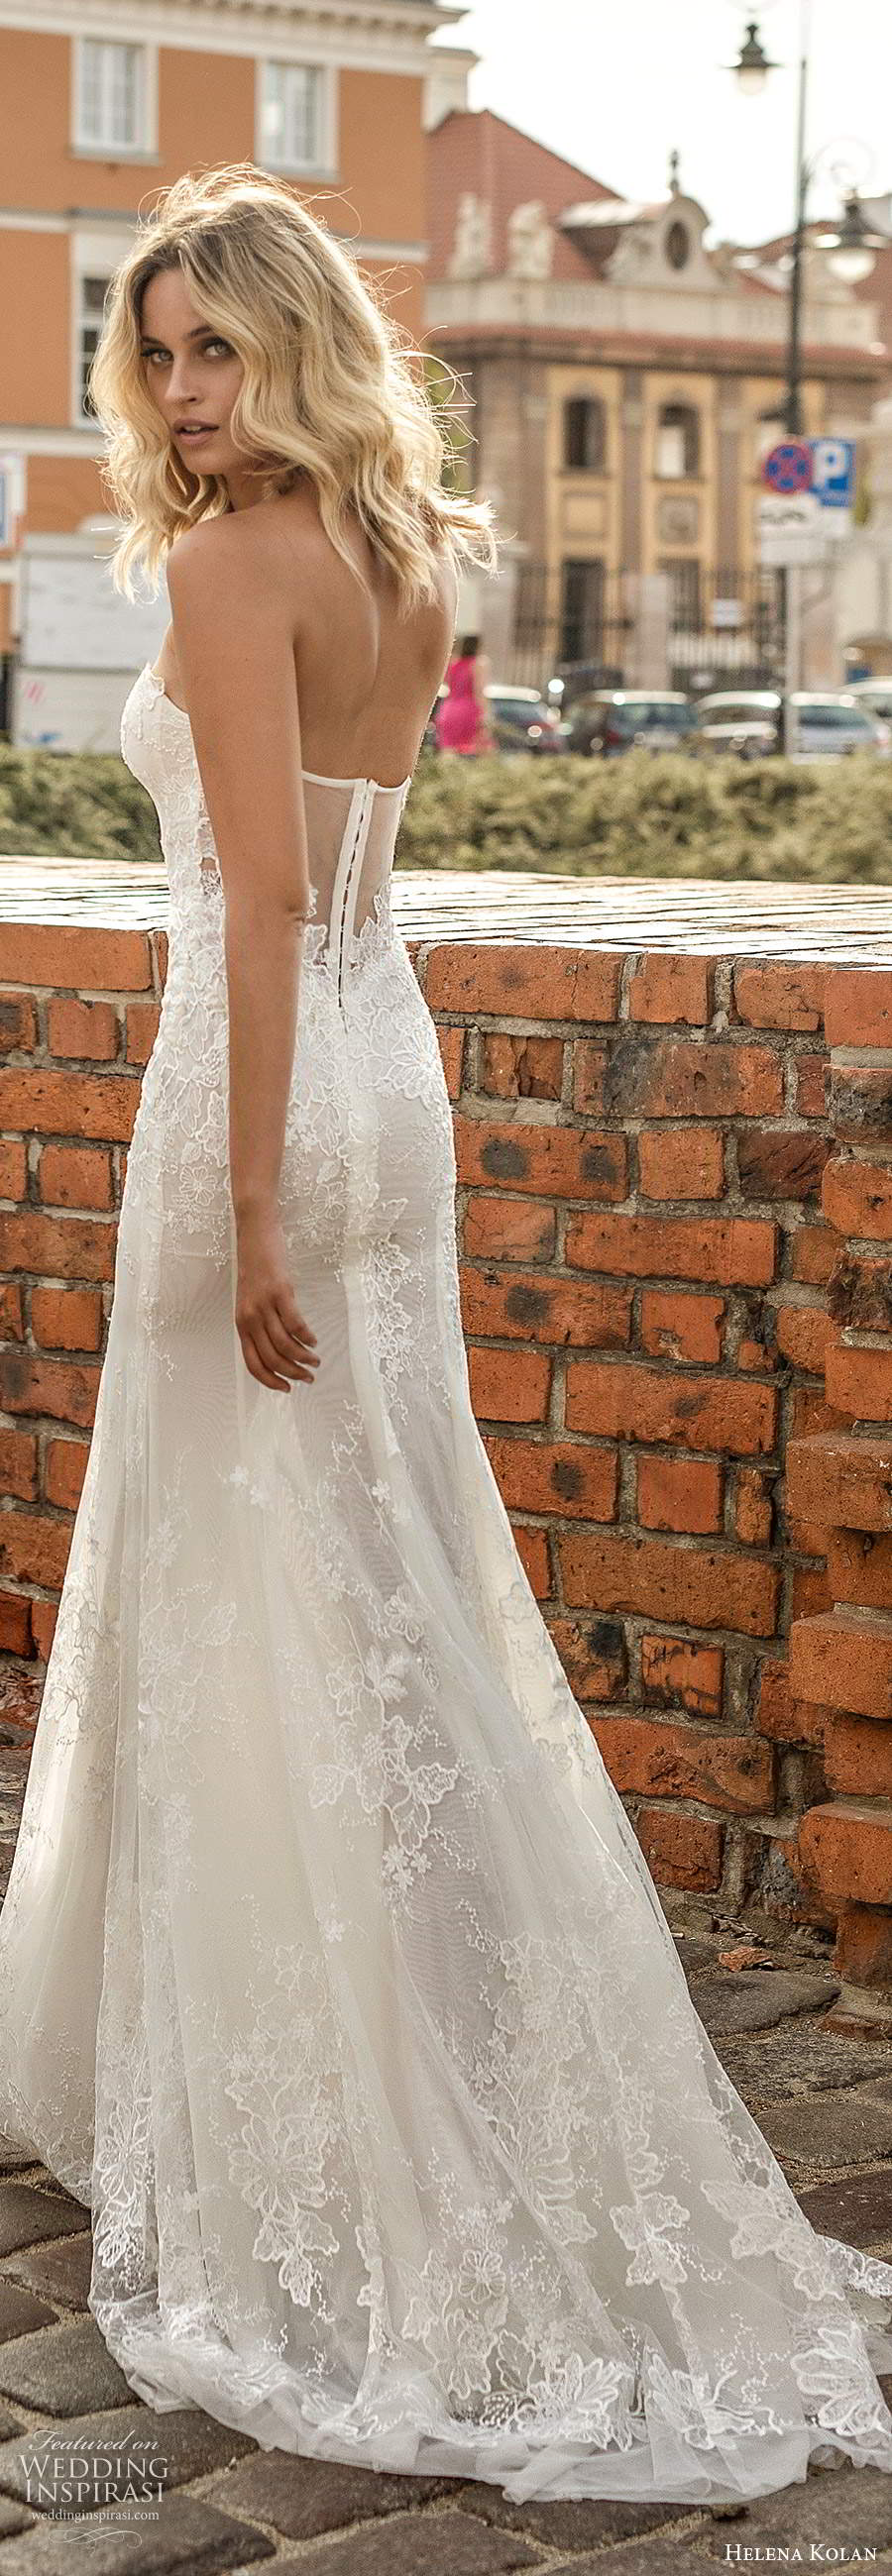 helena kolan 2020 bridal strapless semi sweetheart fully embellished lace fit flare mermaid sheath wedding dress sheer back  chapel train (9) bv